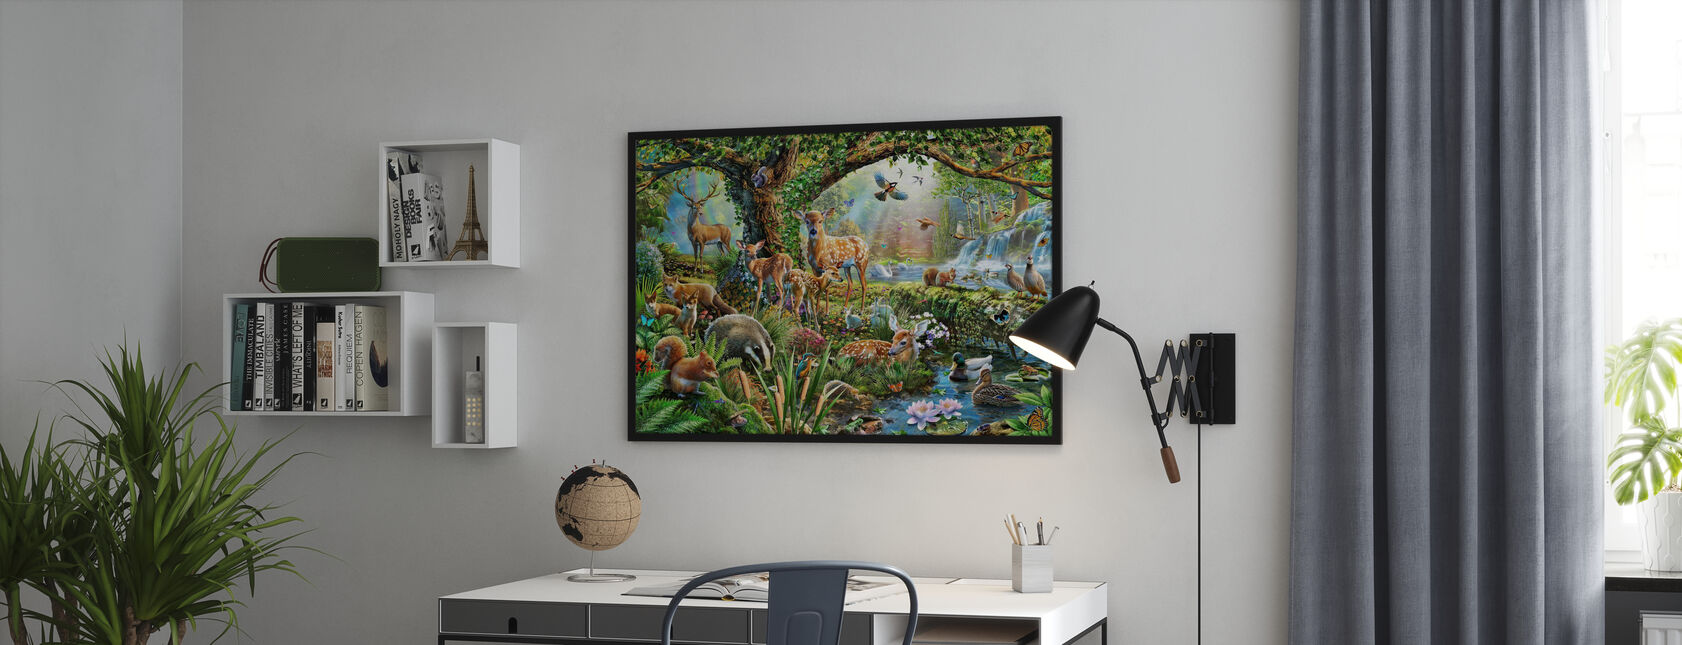 Woodland Creatures - Framed print - Office